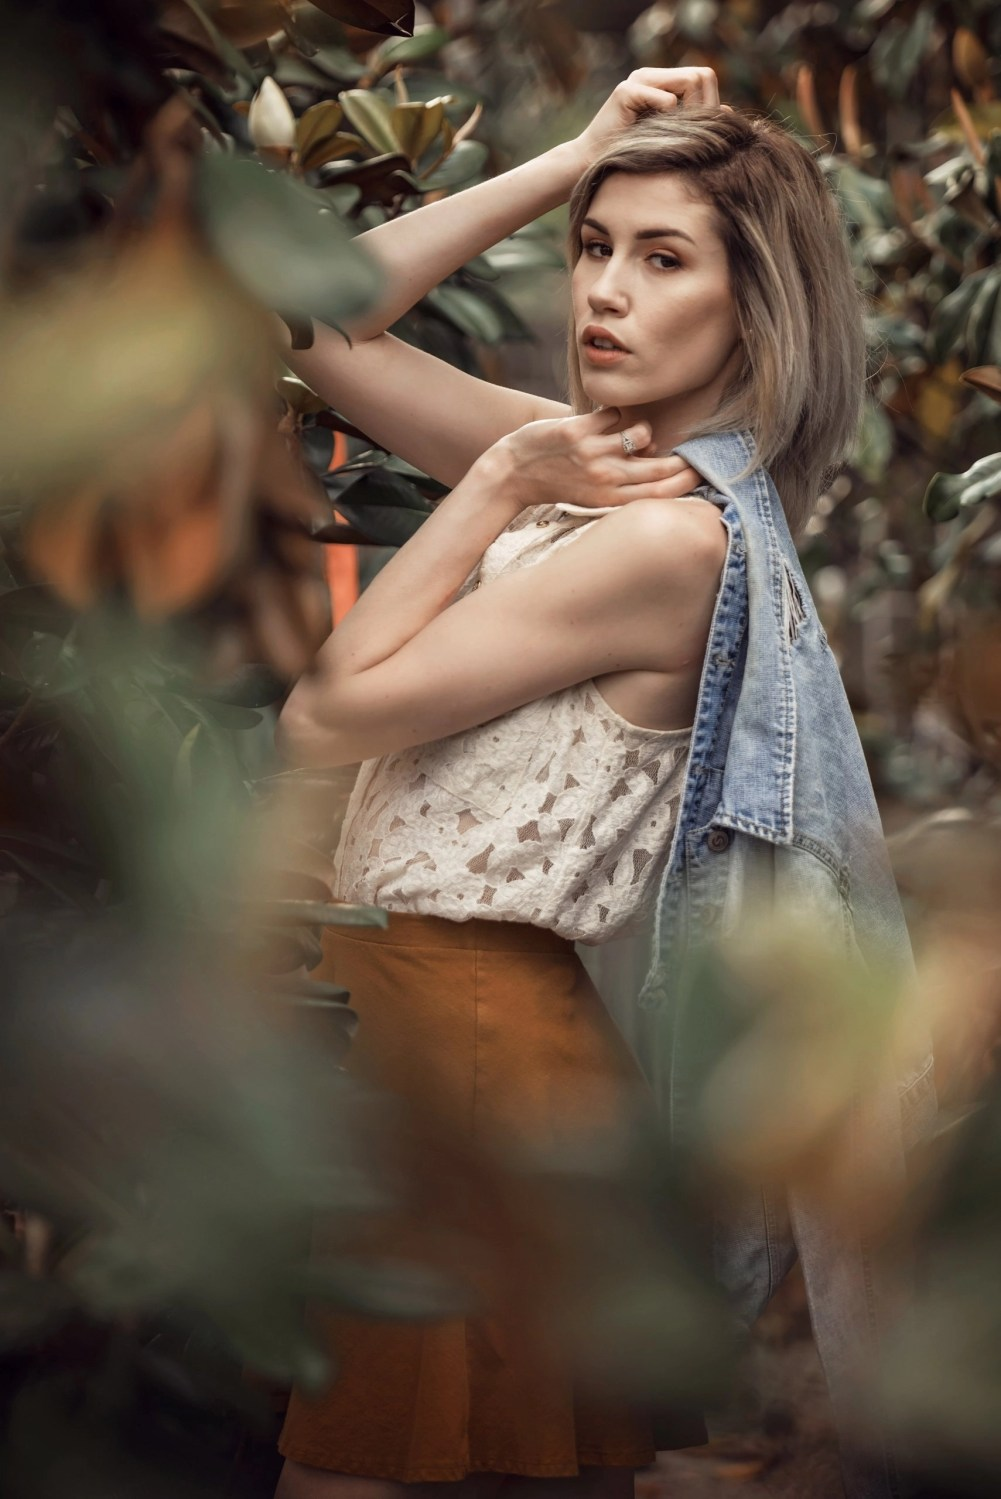 gorgeous senior creative edgy photography in nature